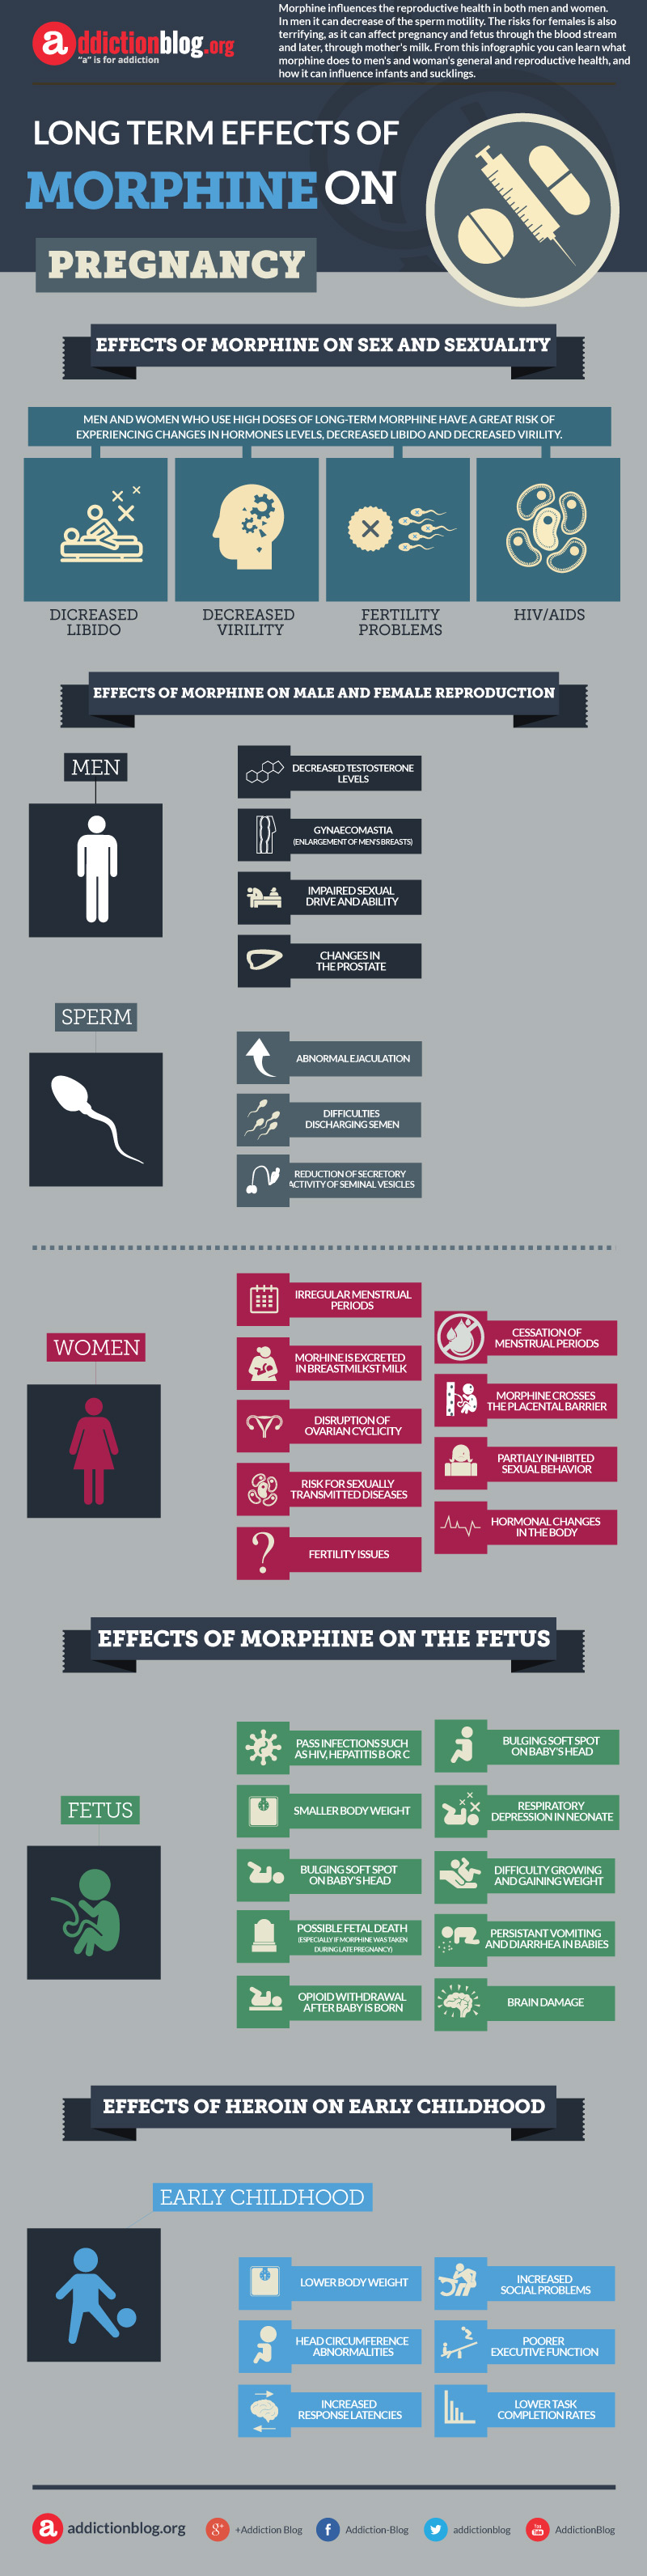 Long term effects of morphine on sex and pregnancy (INFOGRAPHIC)